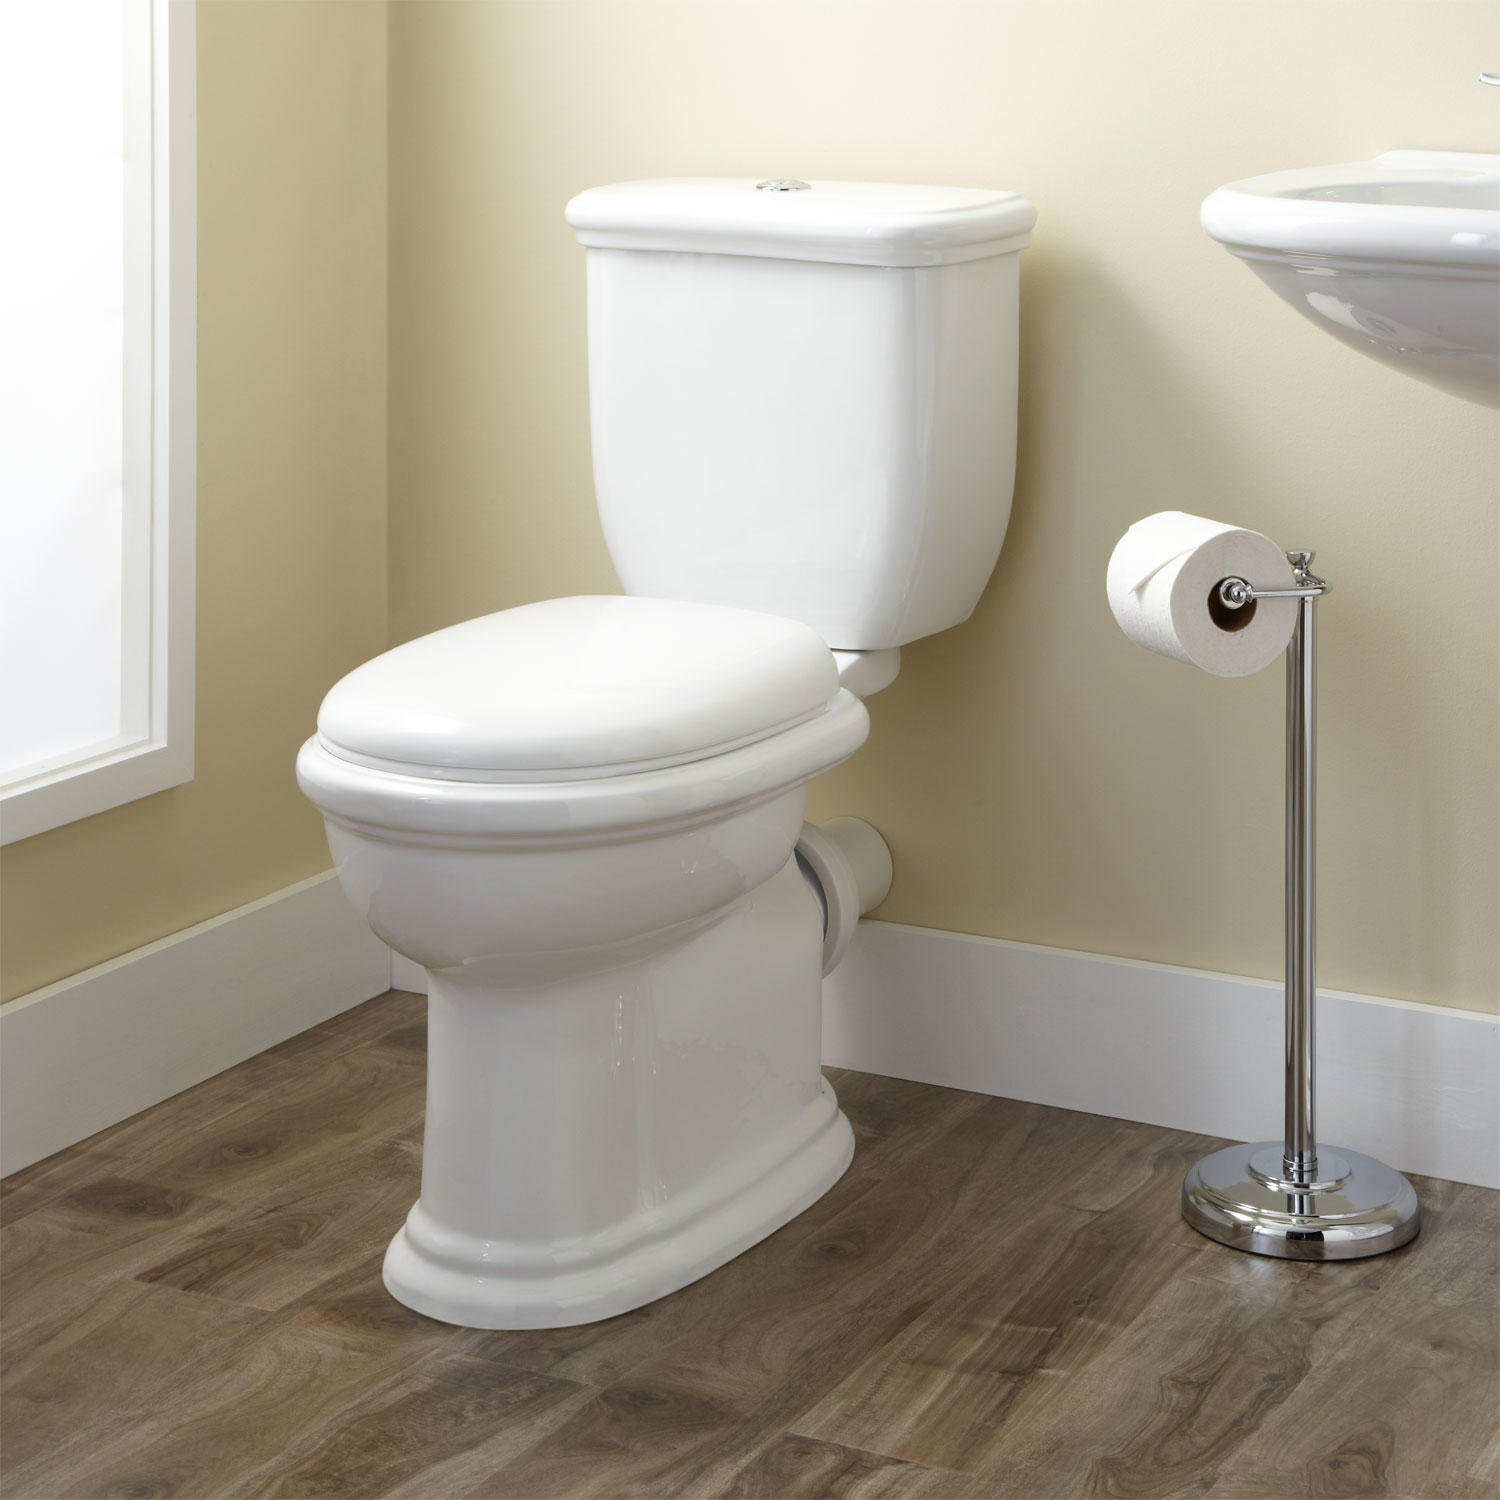 Phenomenal Signature Hardware 393188 Kennard 1 6 Gpf Rear Outlet Two Piece Elongated Chair Height Toilet Seat Included Ncnpc Chair Design For Home Ncnpcorg